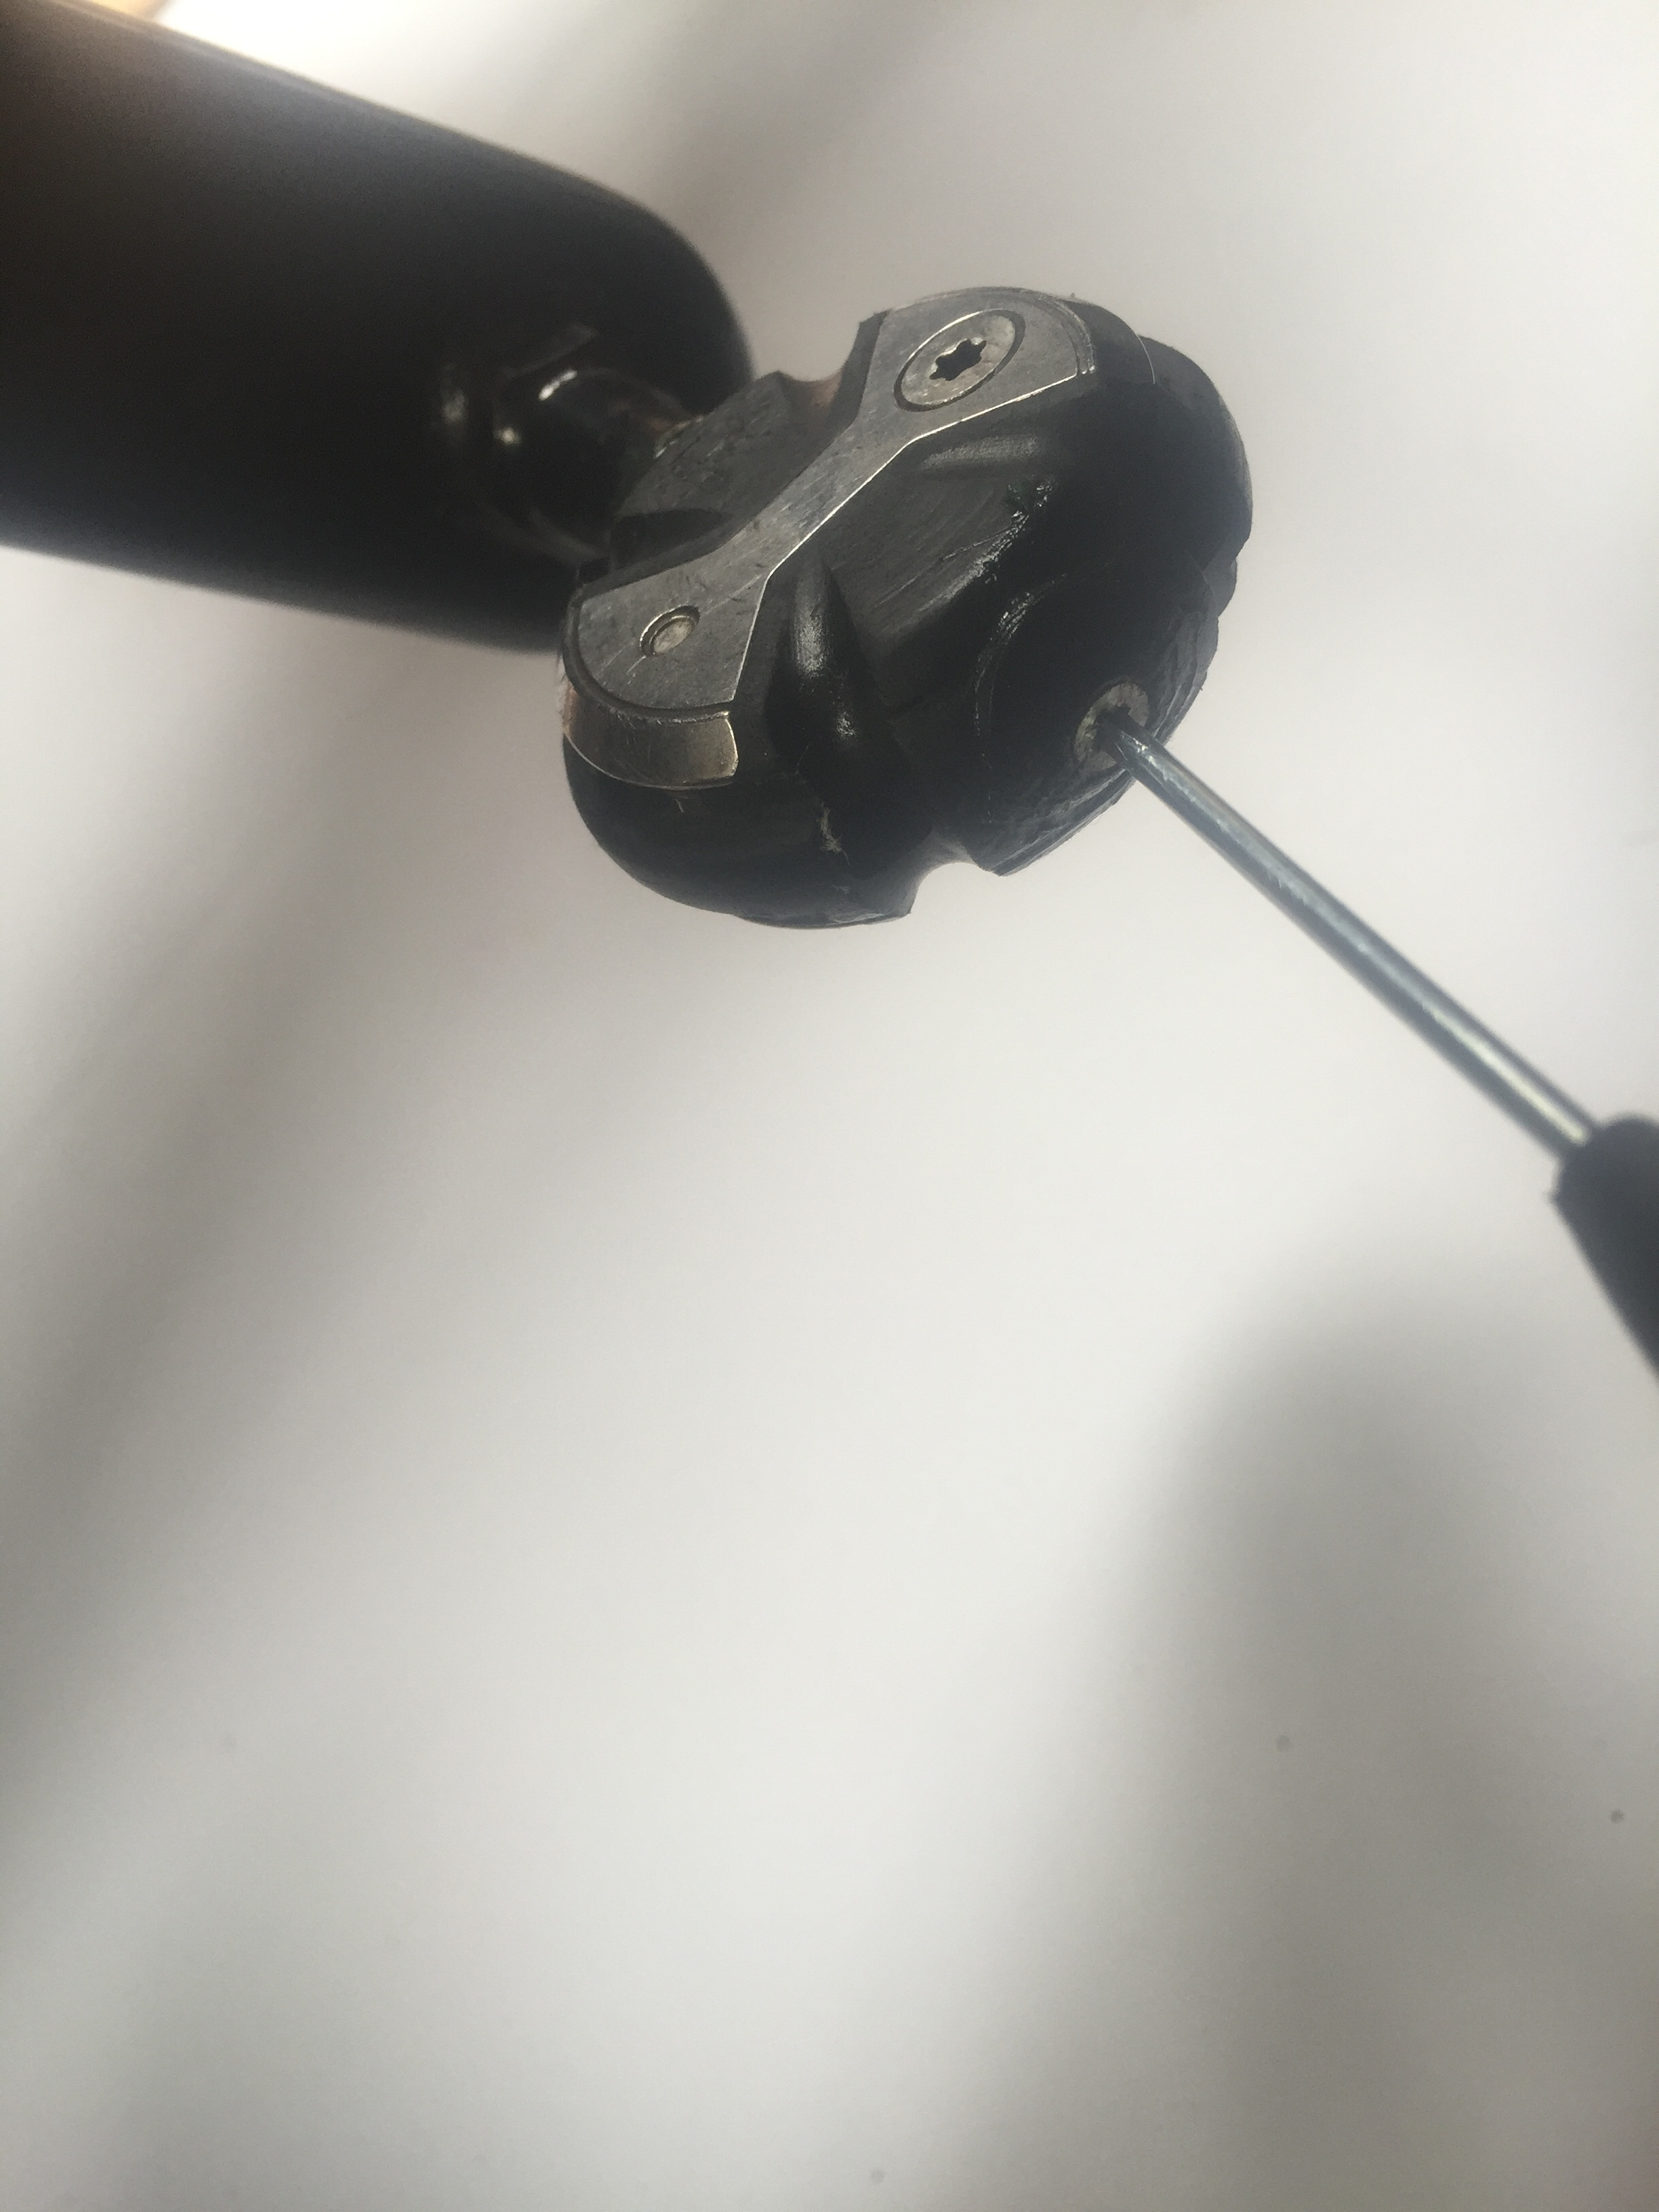 How Often Do I Need To Grease Speedplay Pedals Slo